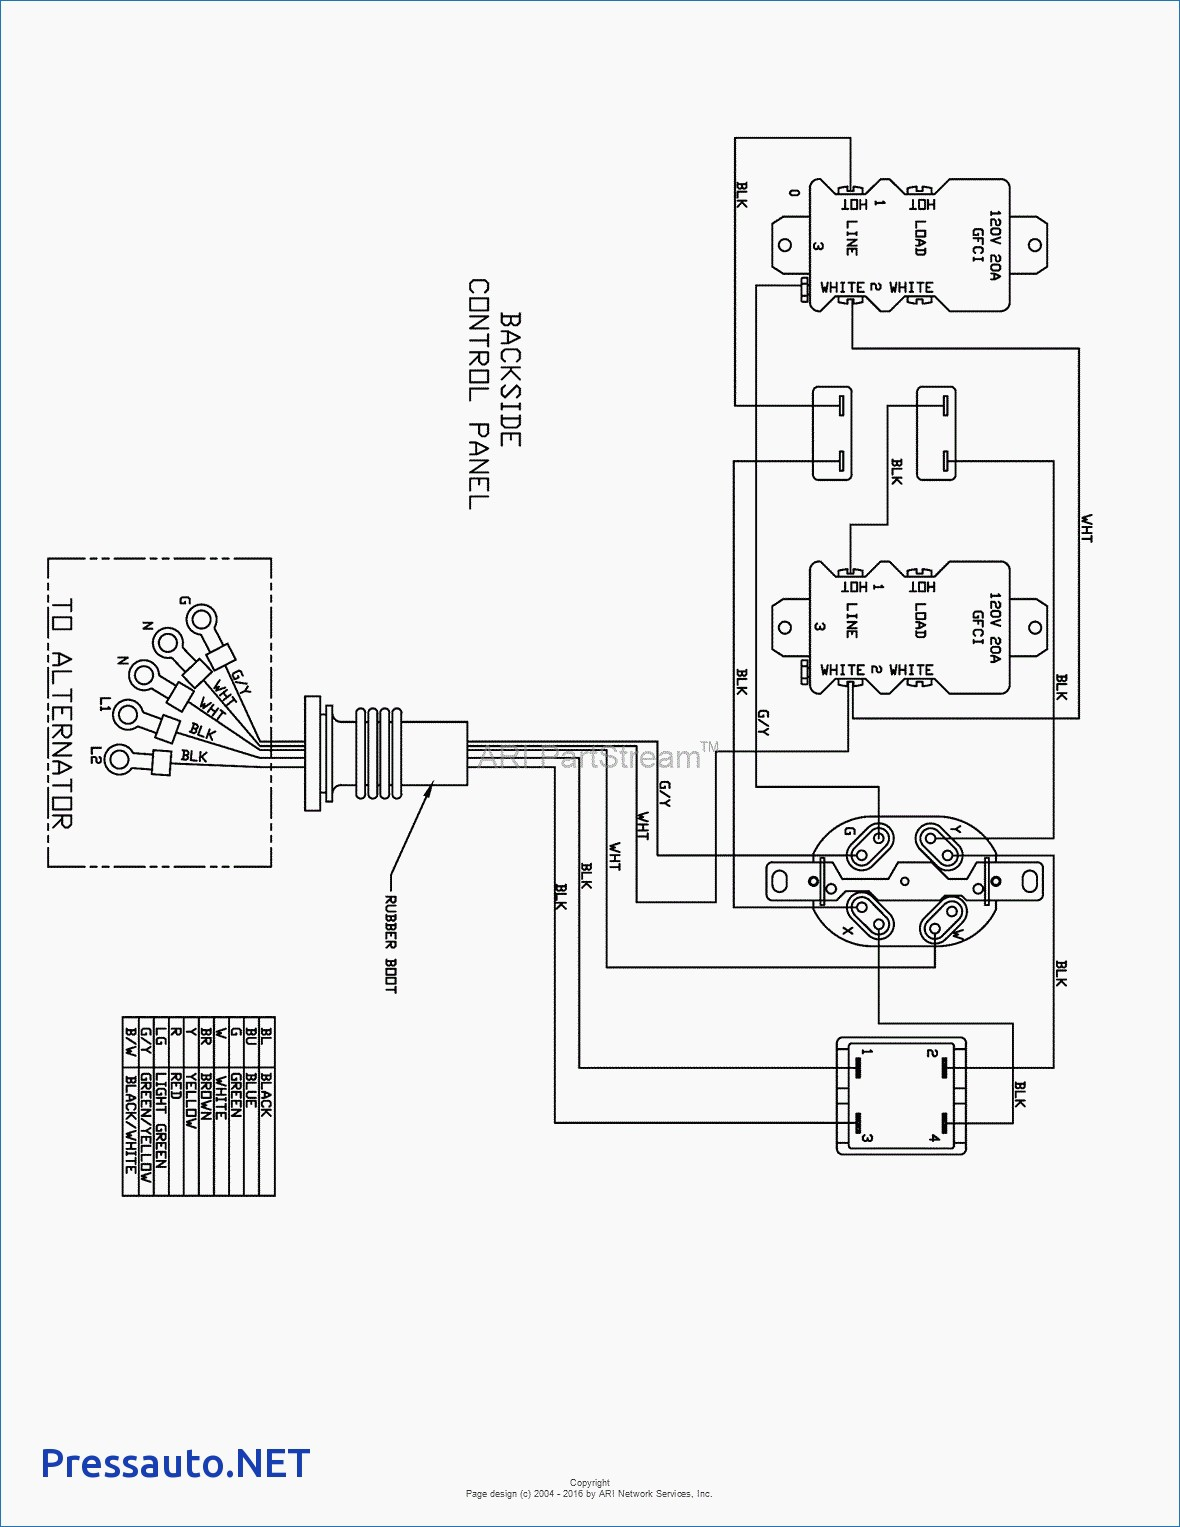 generac generator wiring diagram Download-generac starter generator wiring diagram wire center u2022 rh jamairline co Generac Generator Transfer Switch Wiring Generac RV Generator Wiring Diagrams 4-s